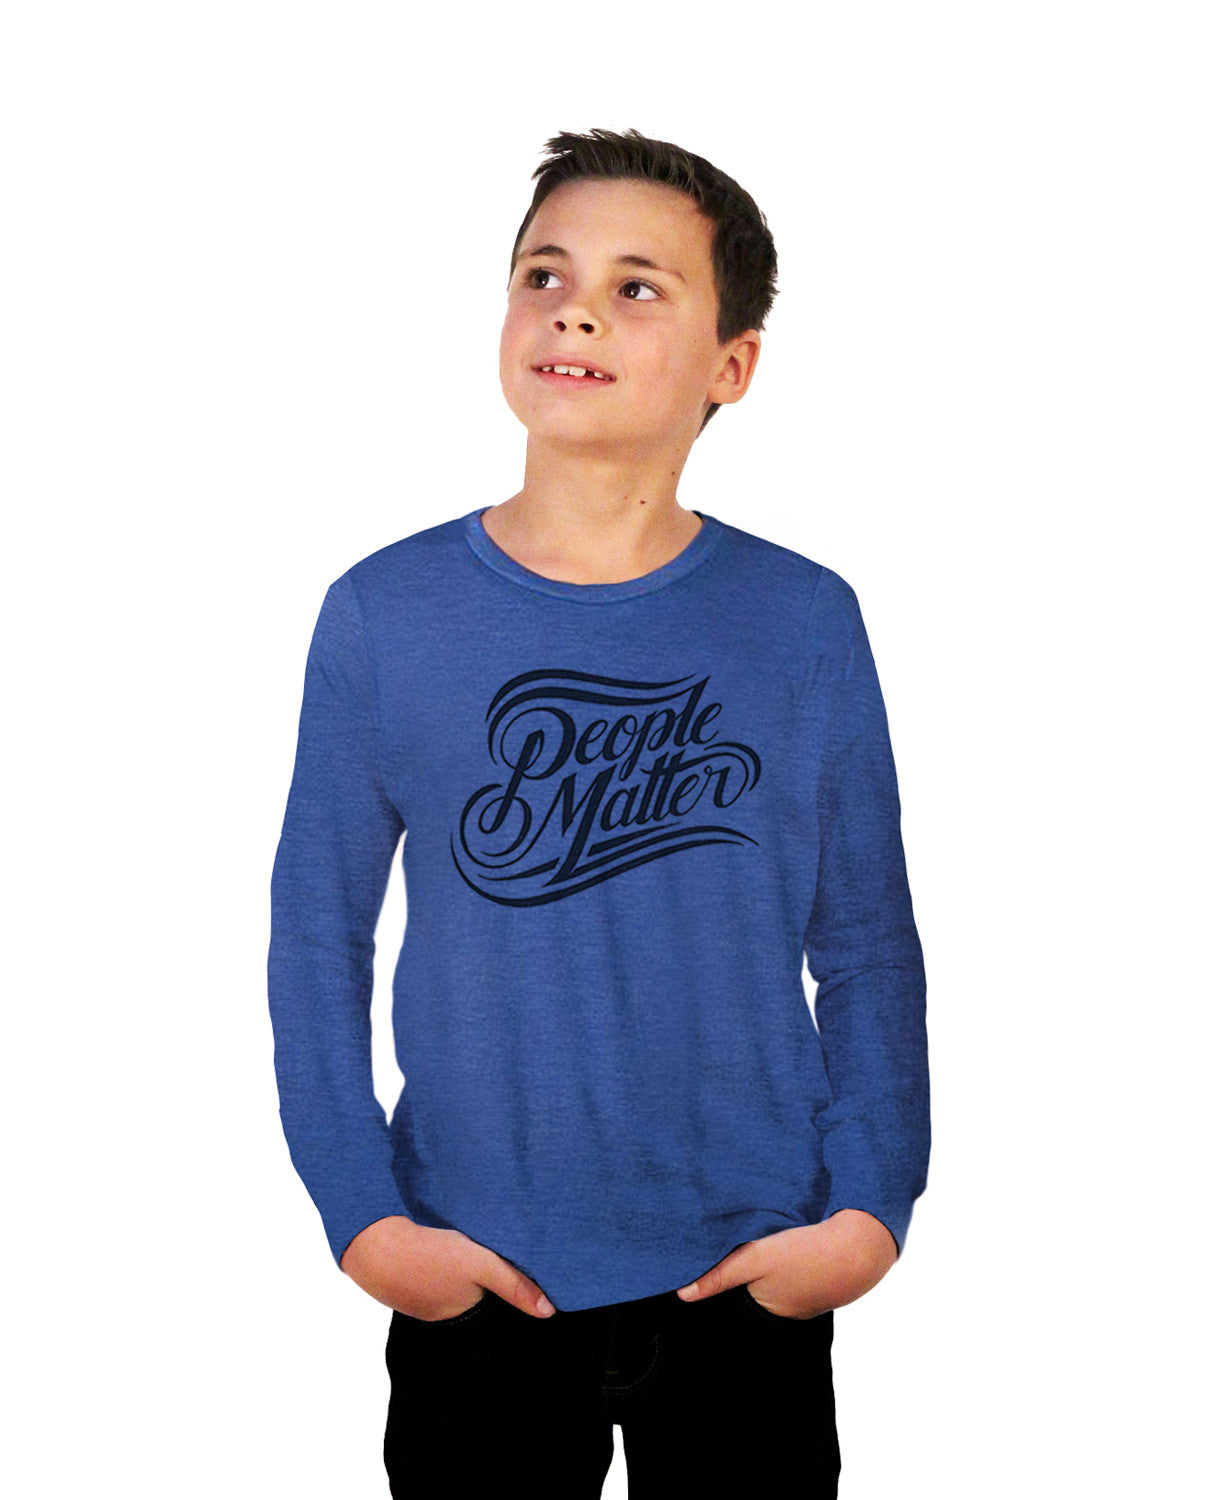 People Matter Youth Jersey Long Sleeve Tee